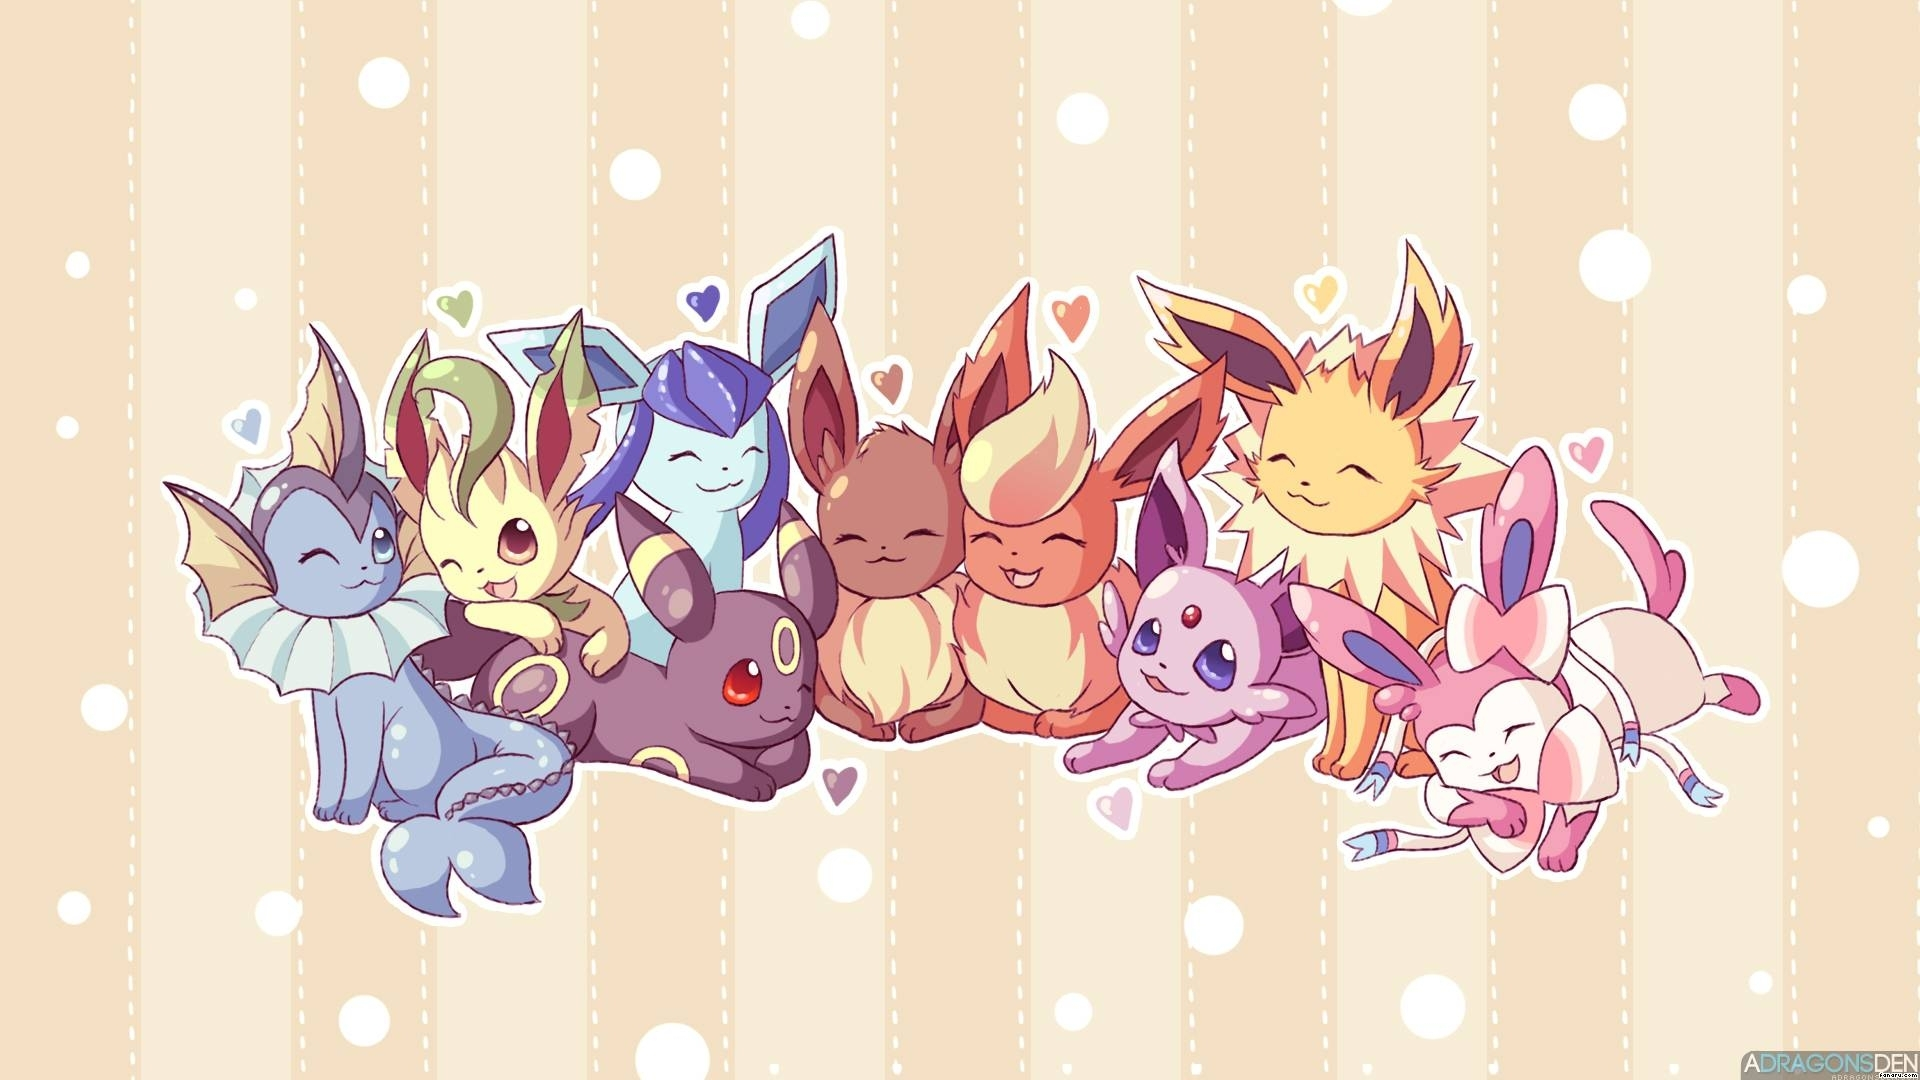 10 Top Pokemon Eevee Evolutions Wallpaper FULL HD 1920×1080 For PC Background